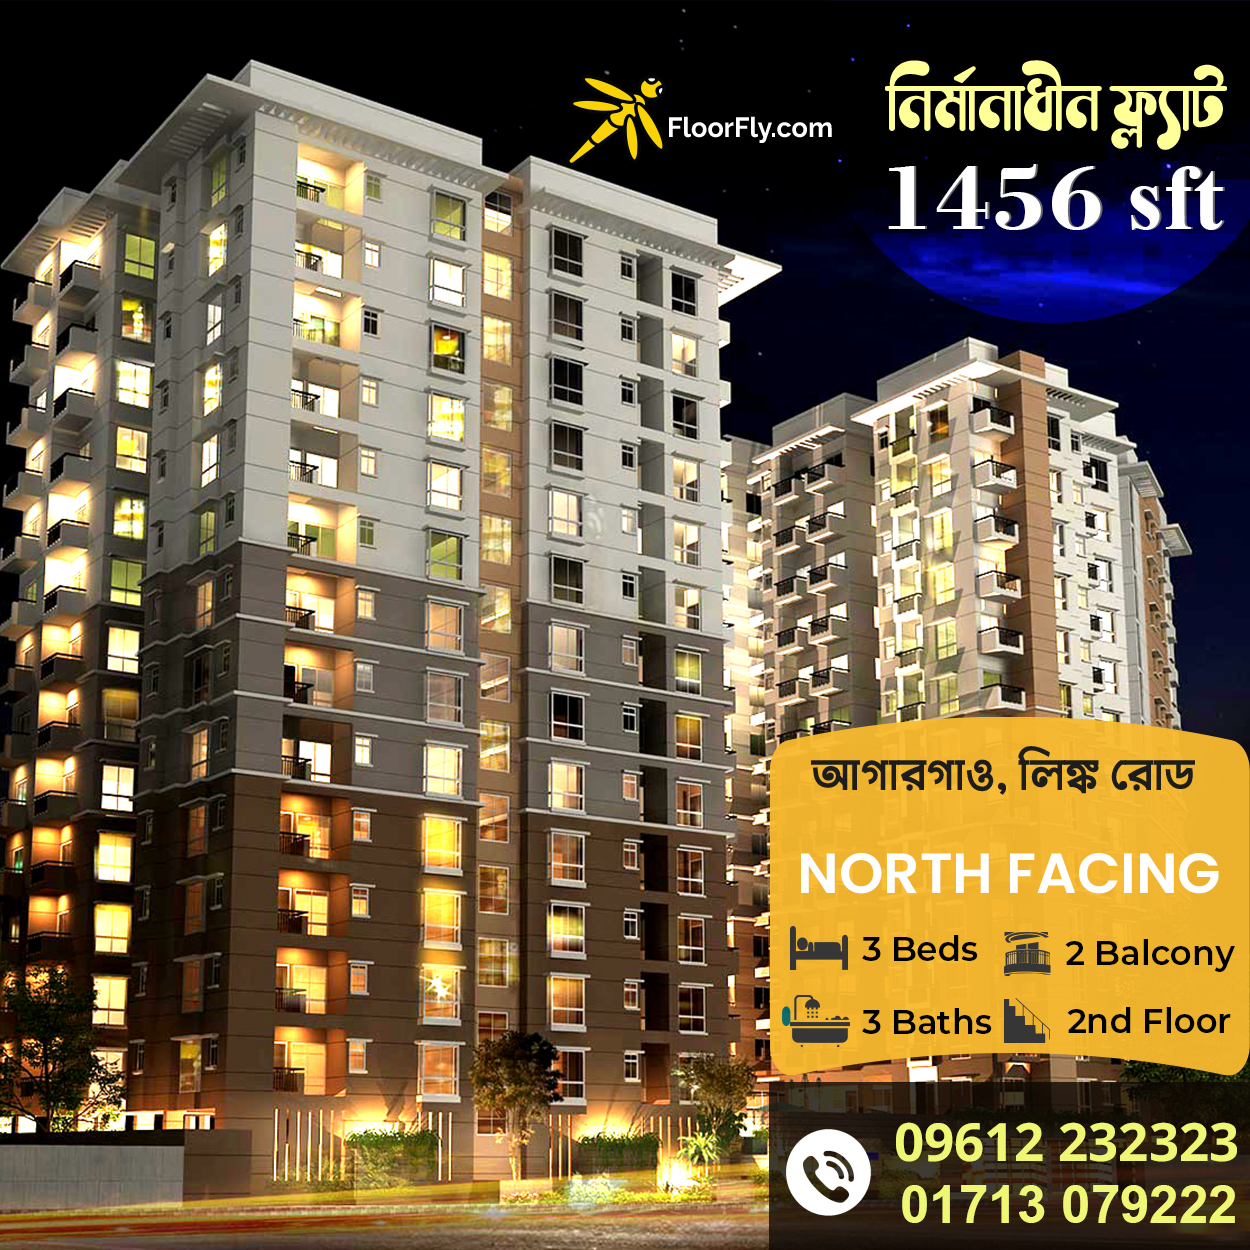 Best Price 1456 sft 3 Bed 3 Bath Flat For Sale in Link Road, Agargaon Prime Location